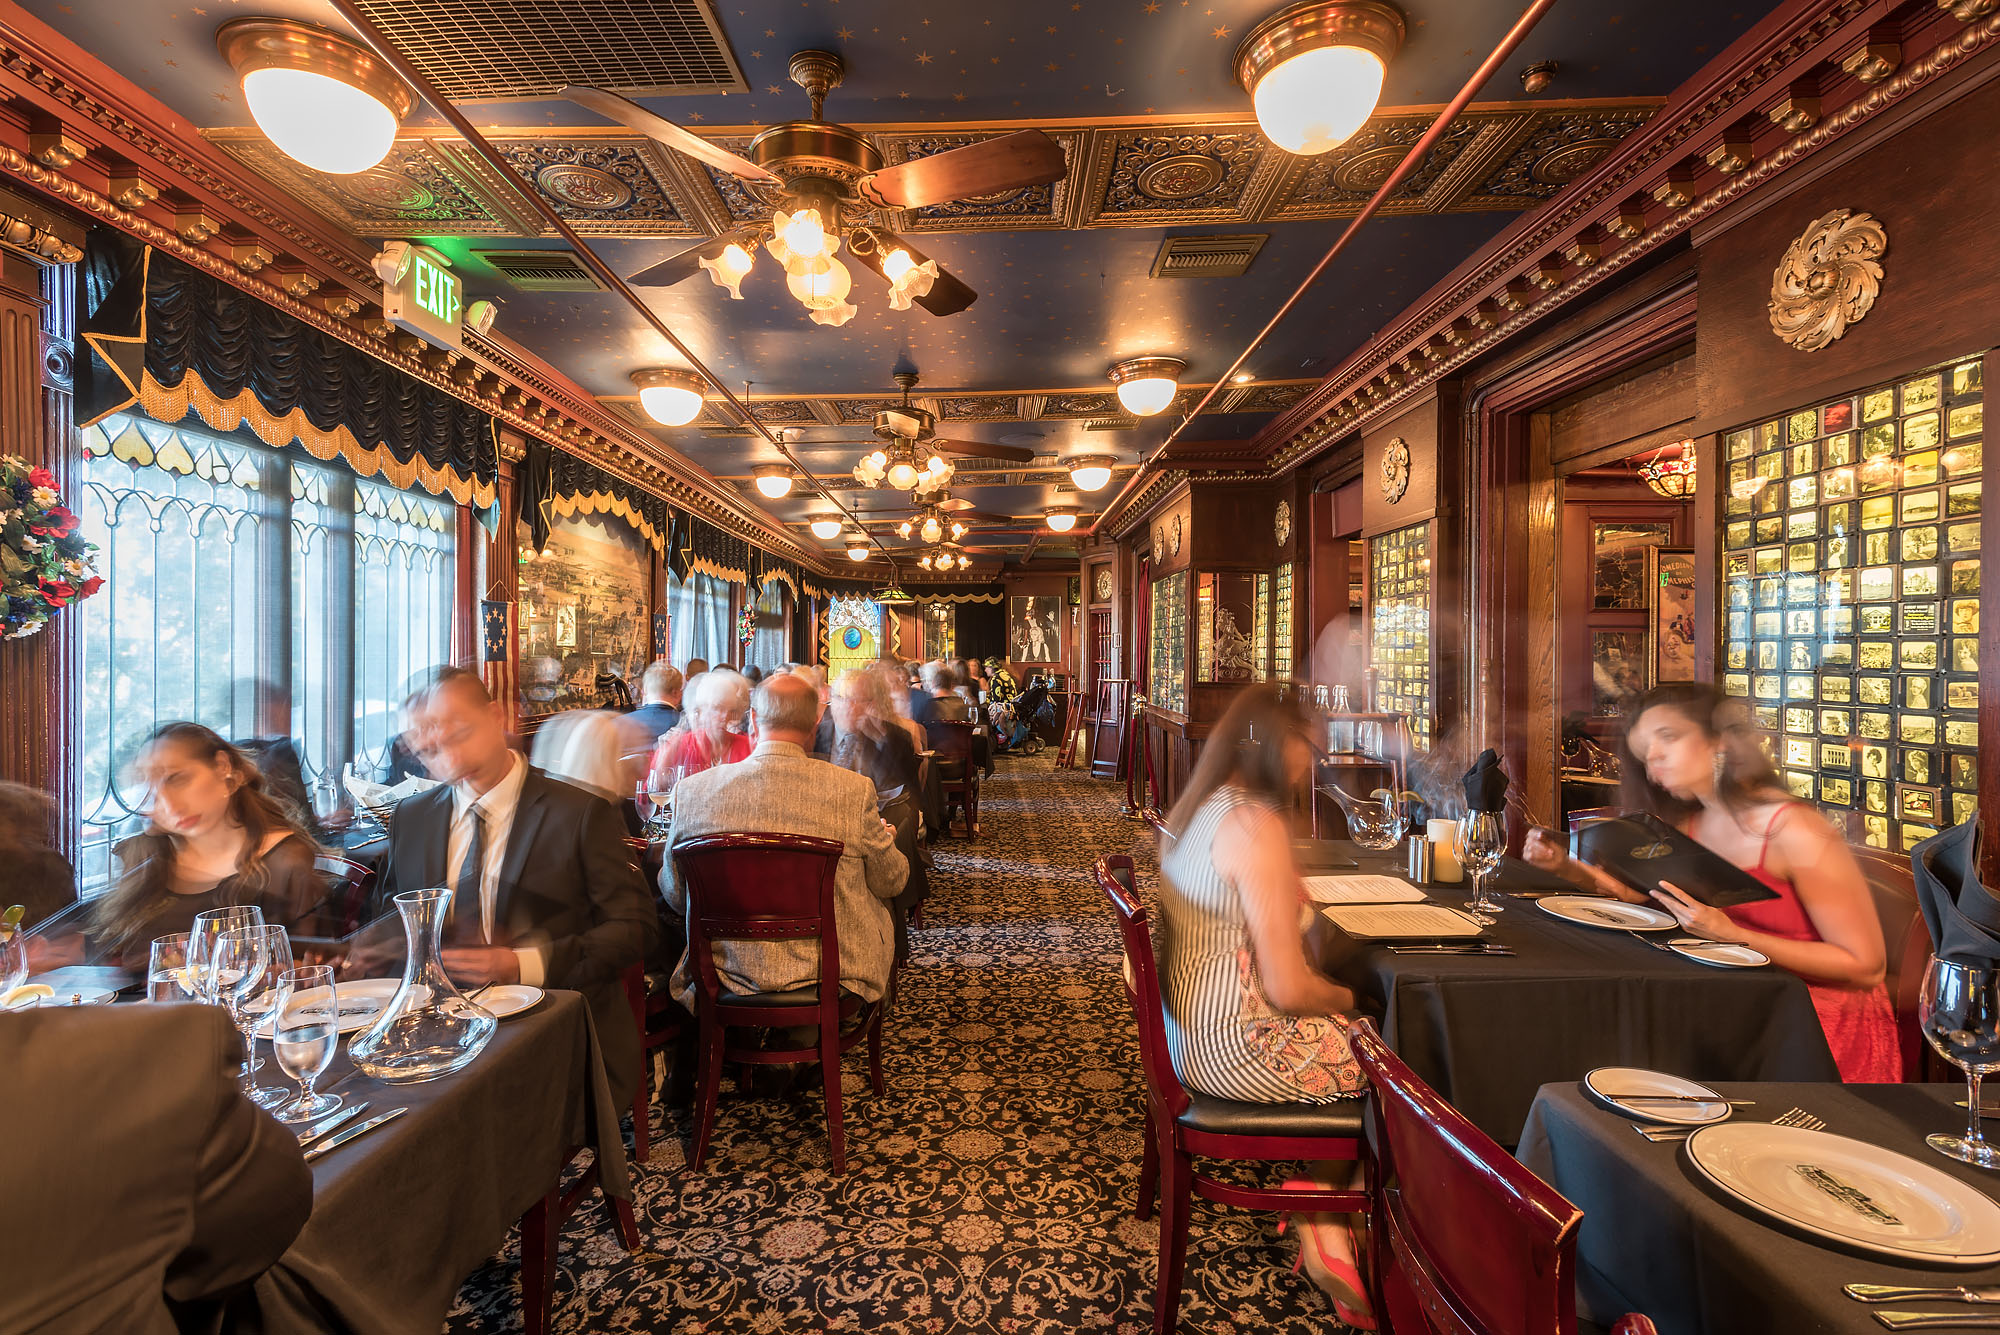 Hollywood's Timeless Magic Castle Gets a Surprising New Executive Chef